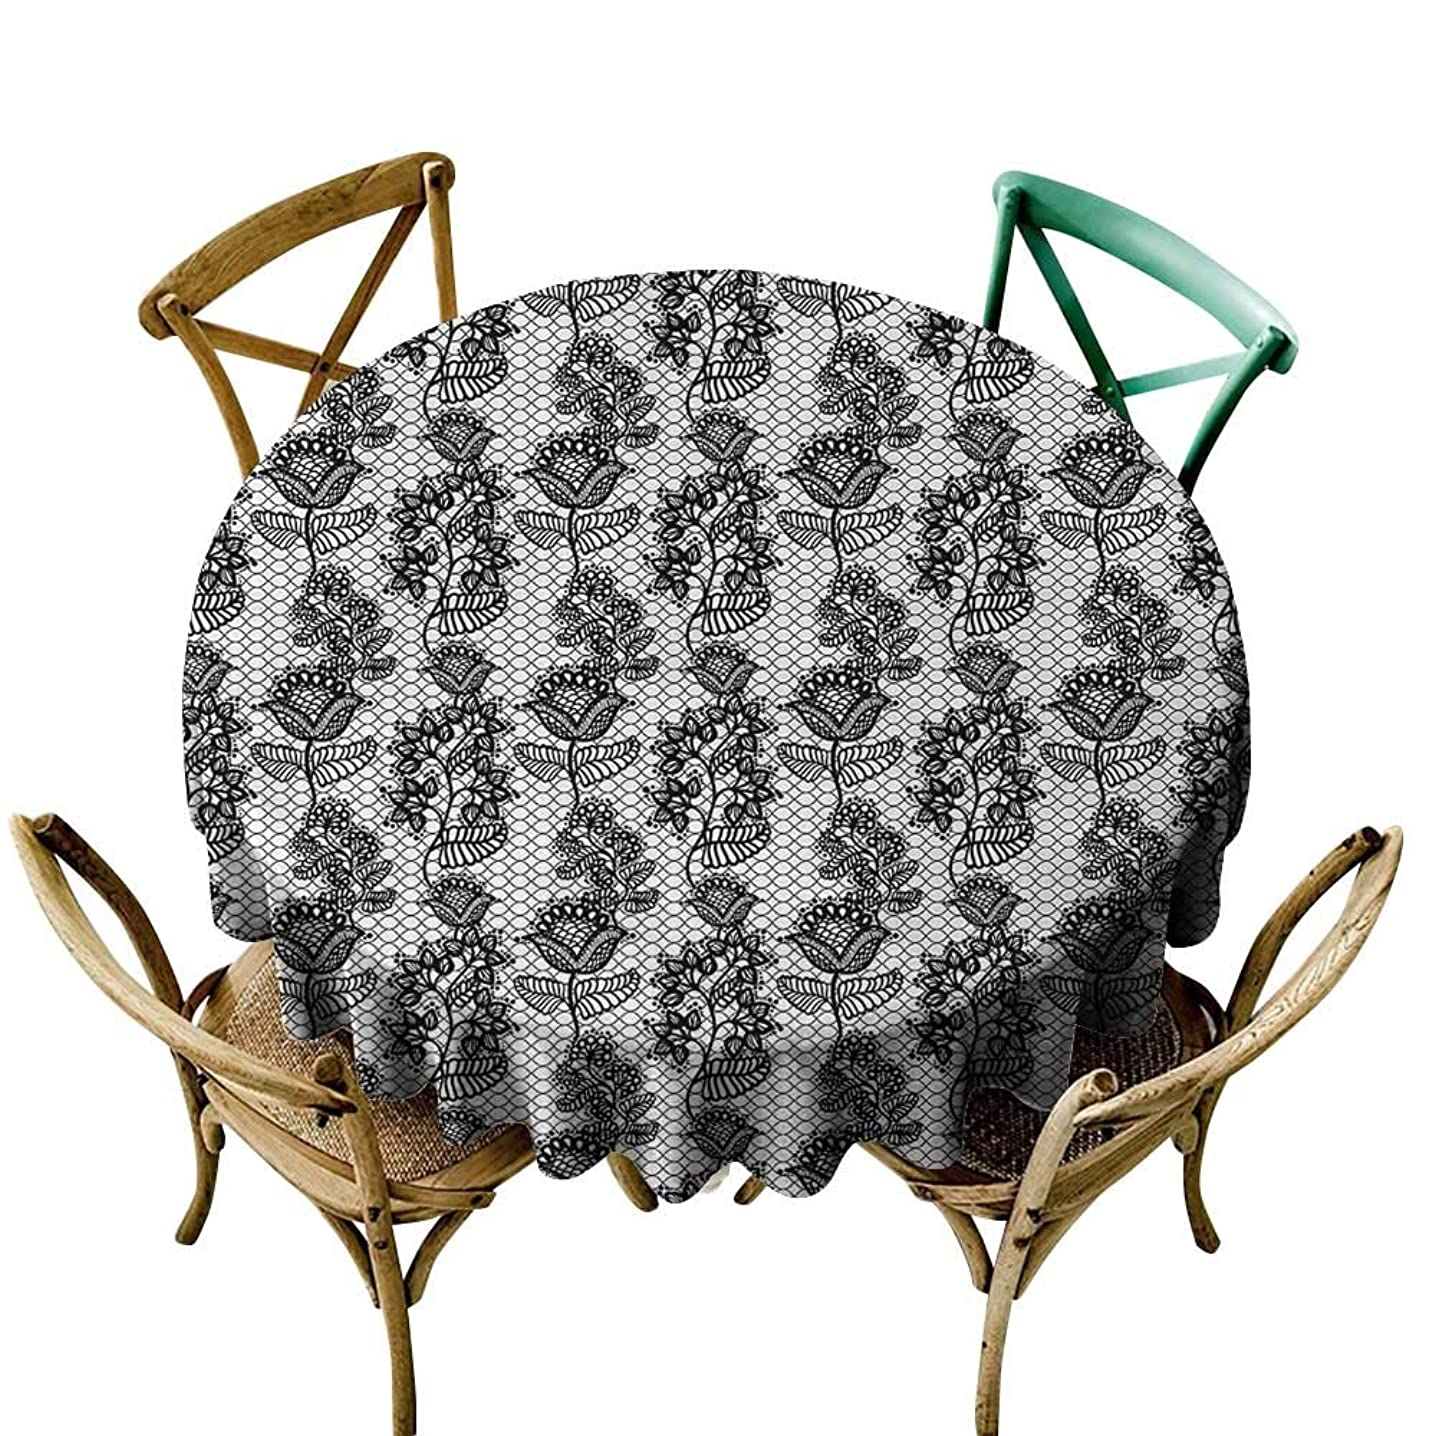 round outdoor tablecloth 60 inch Black and White,Lace Style Victorian Flower Motifs on Wavy Backdrop Western Girls Pattern,Black White Printed Indoor Outdoor Camping Picnic Circle Table Cloth